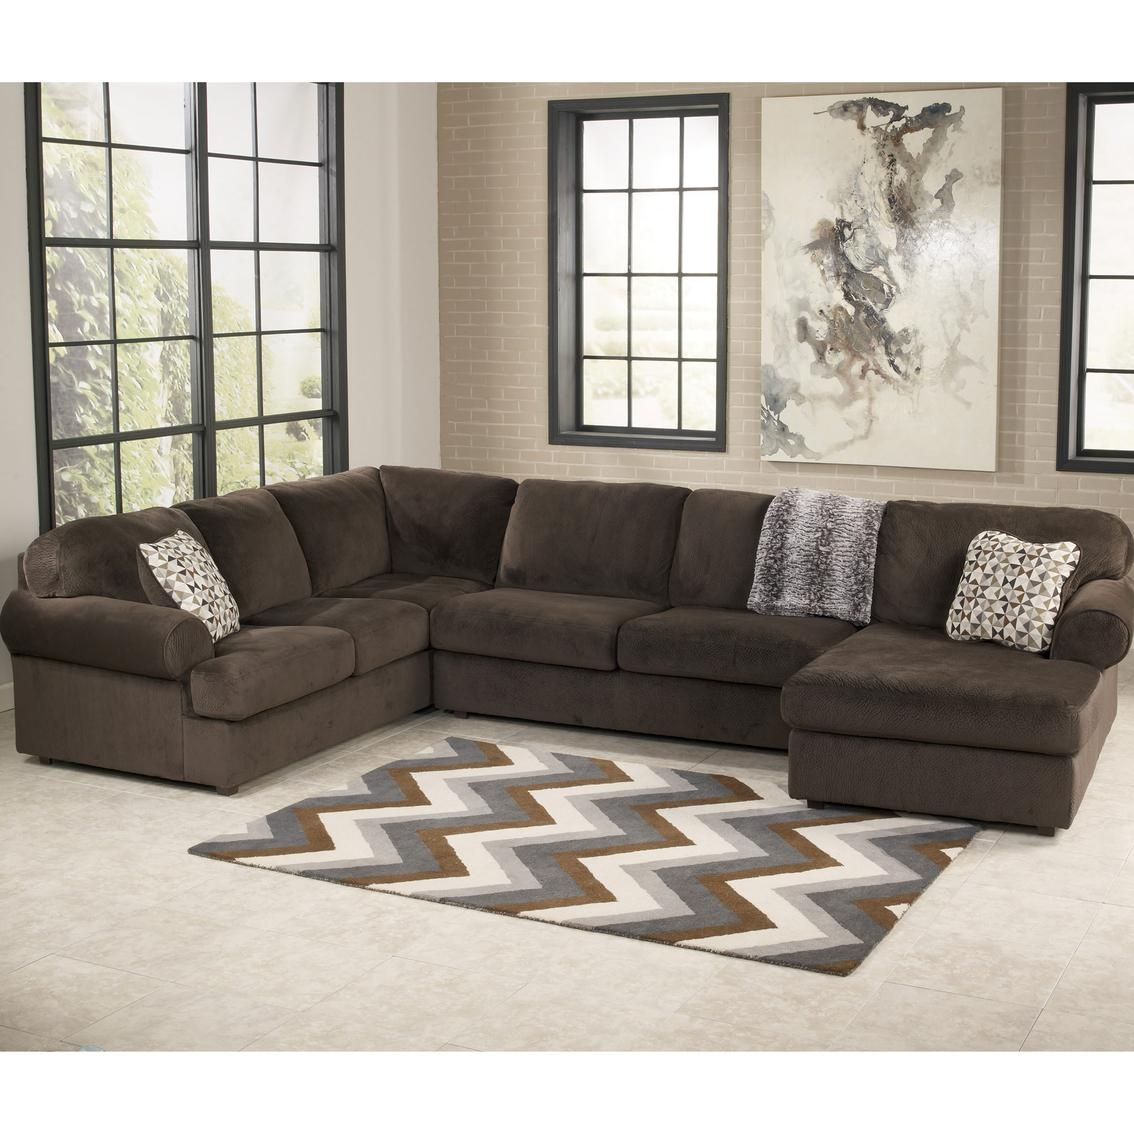 Signature Designashley Jessa Place 3 Pc (Image 14 of 20)